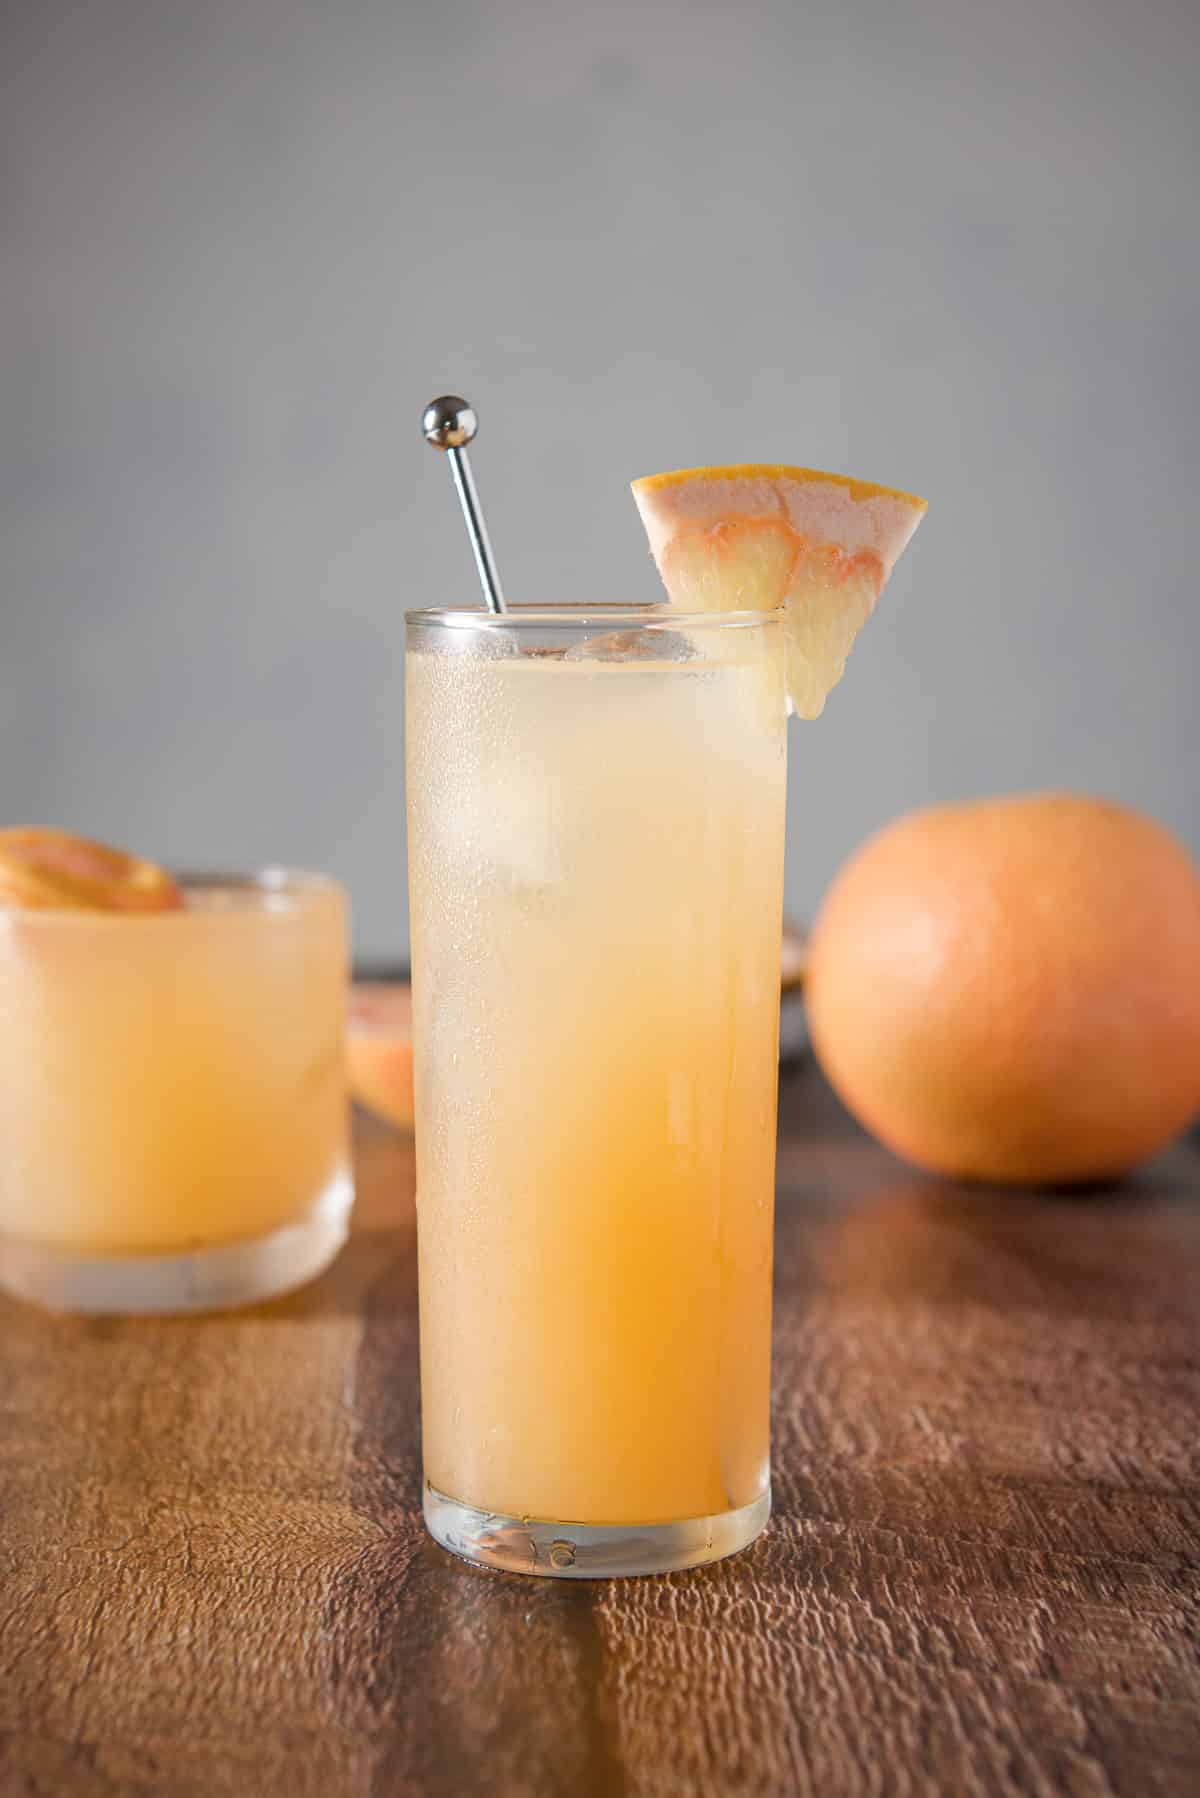 Vertical view of the tall collins glass with the cocktail with a stirrer and wedge of grapefruit. There is a shorter glass in the background and a whole grapefruit